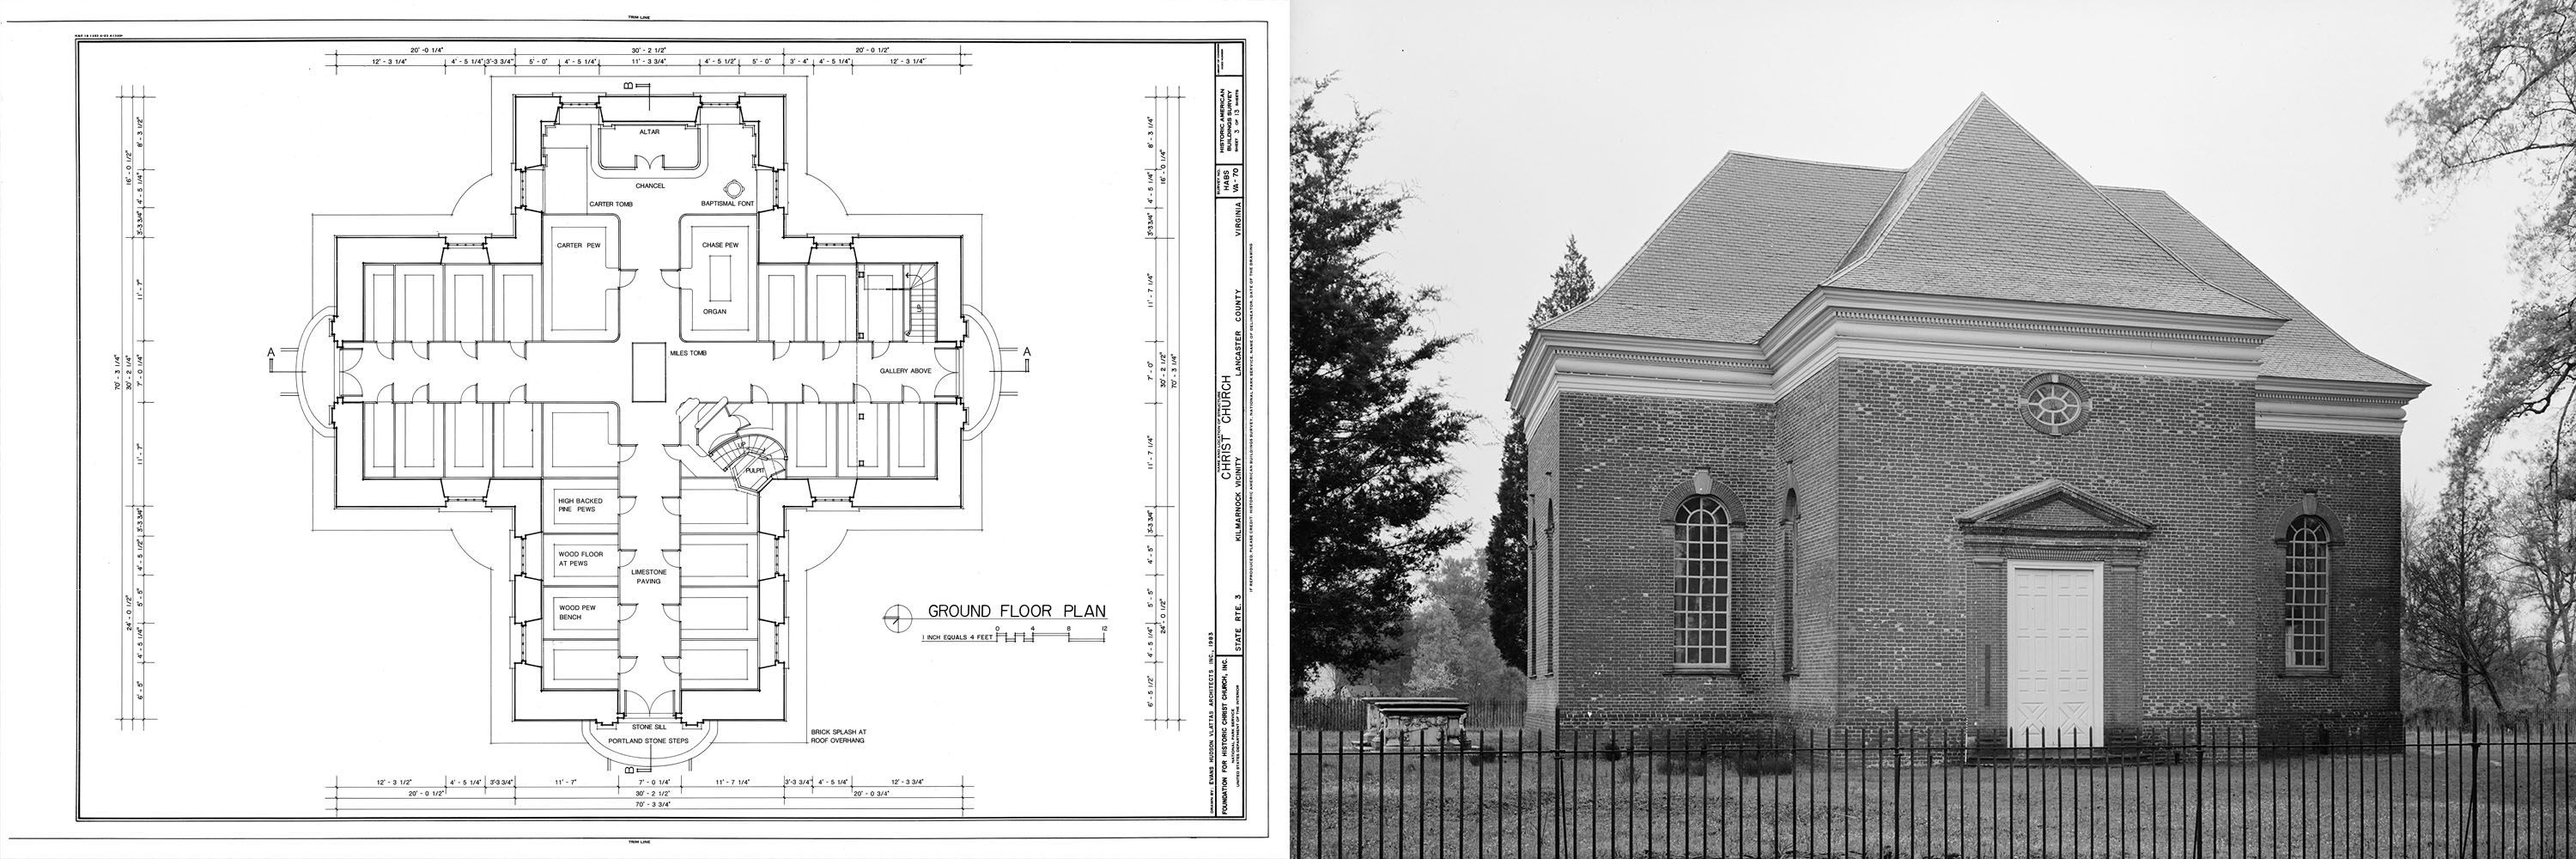 4 colonial society the american yawp christ church virginia via library of congress malvernweather Choice Image